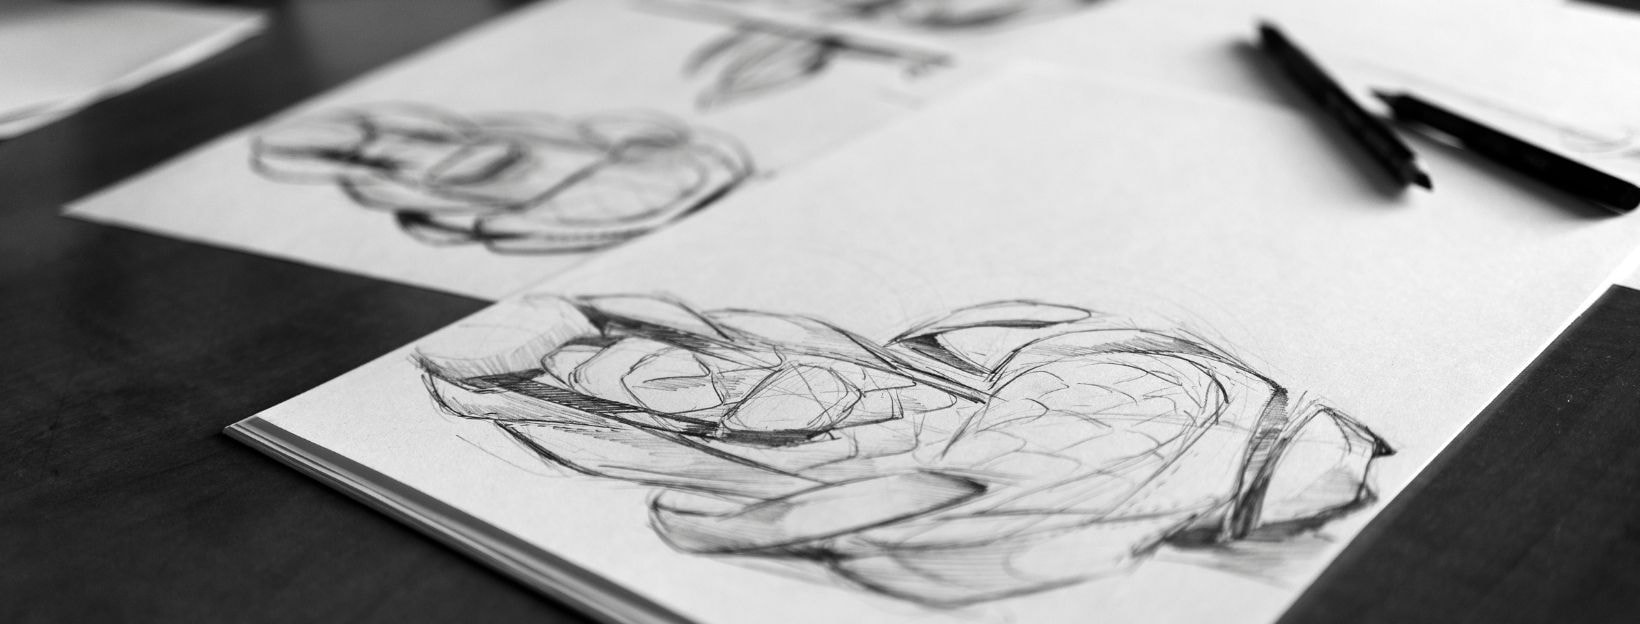 BANNER-Canva-MADGvmaeWas-seat-sketch-paper-on-table